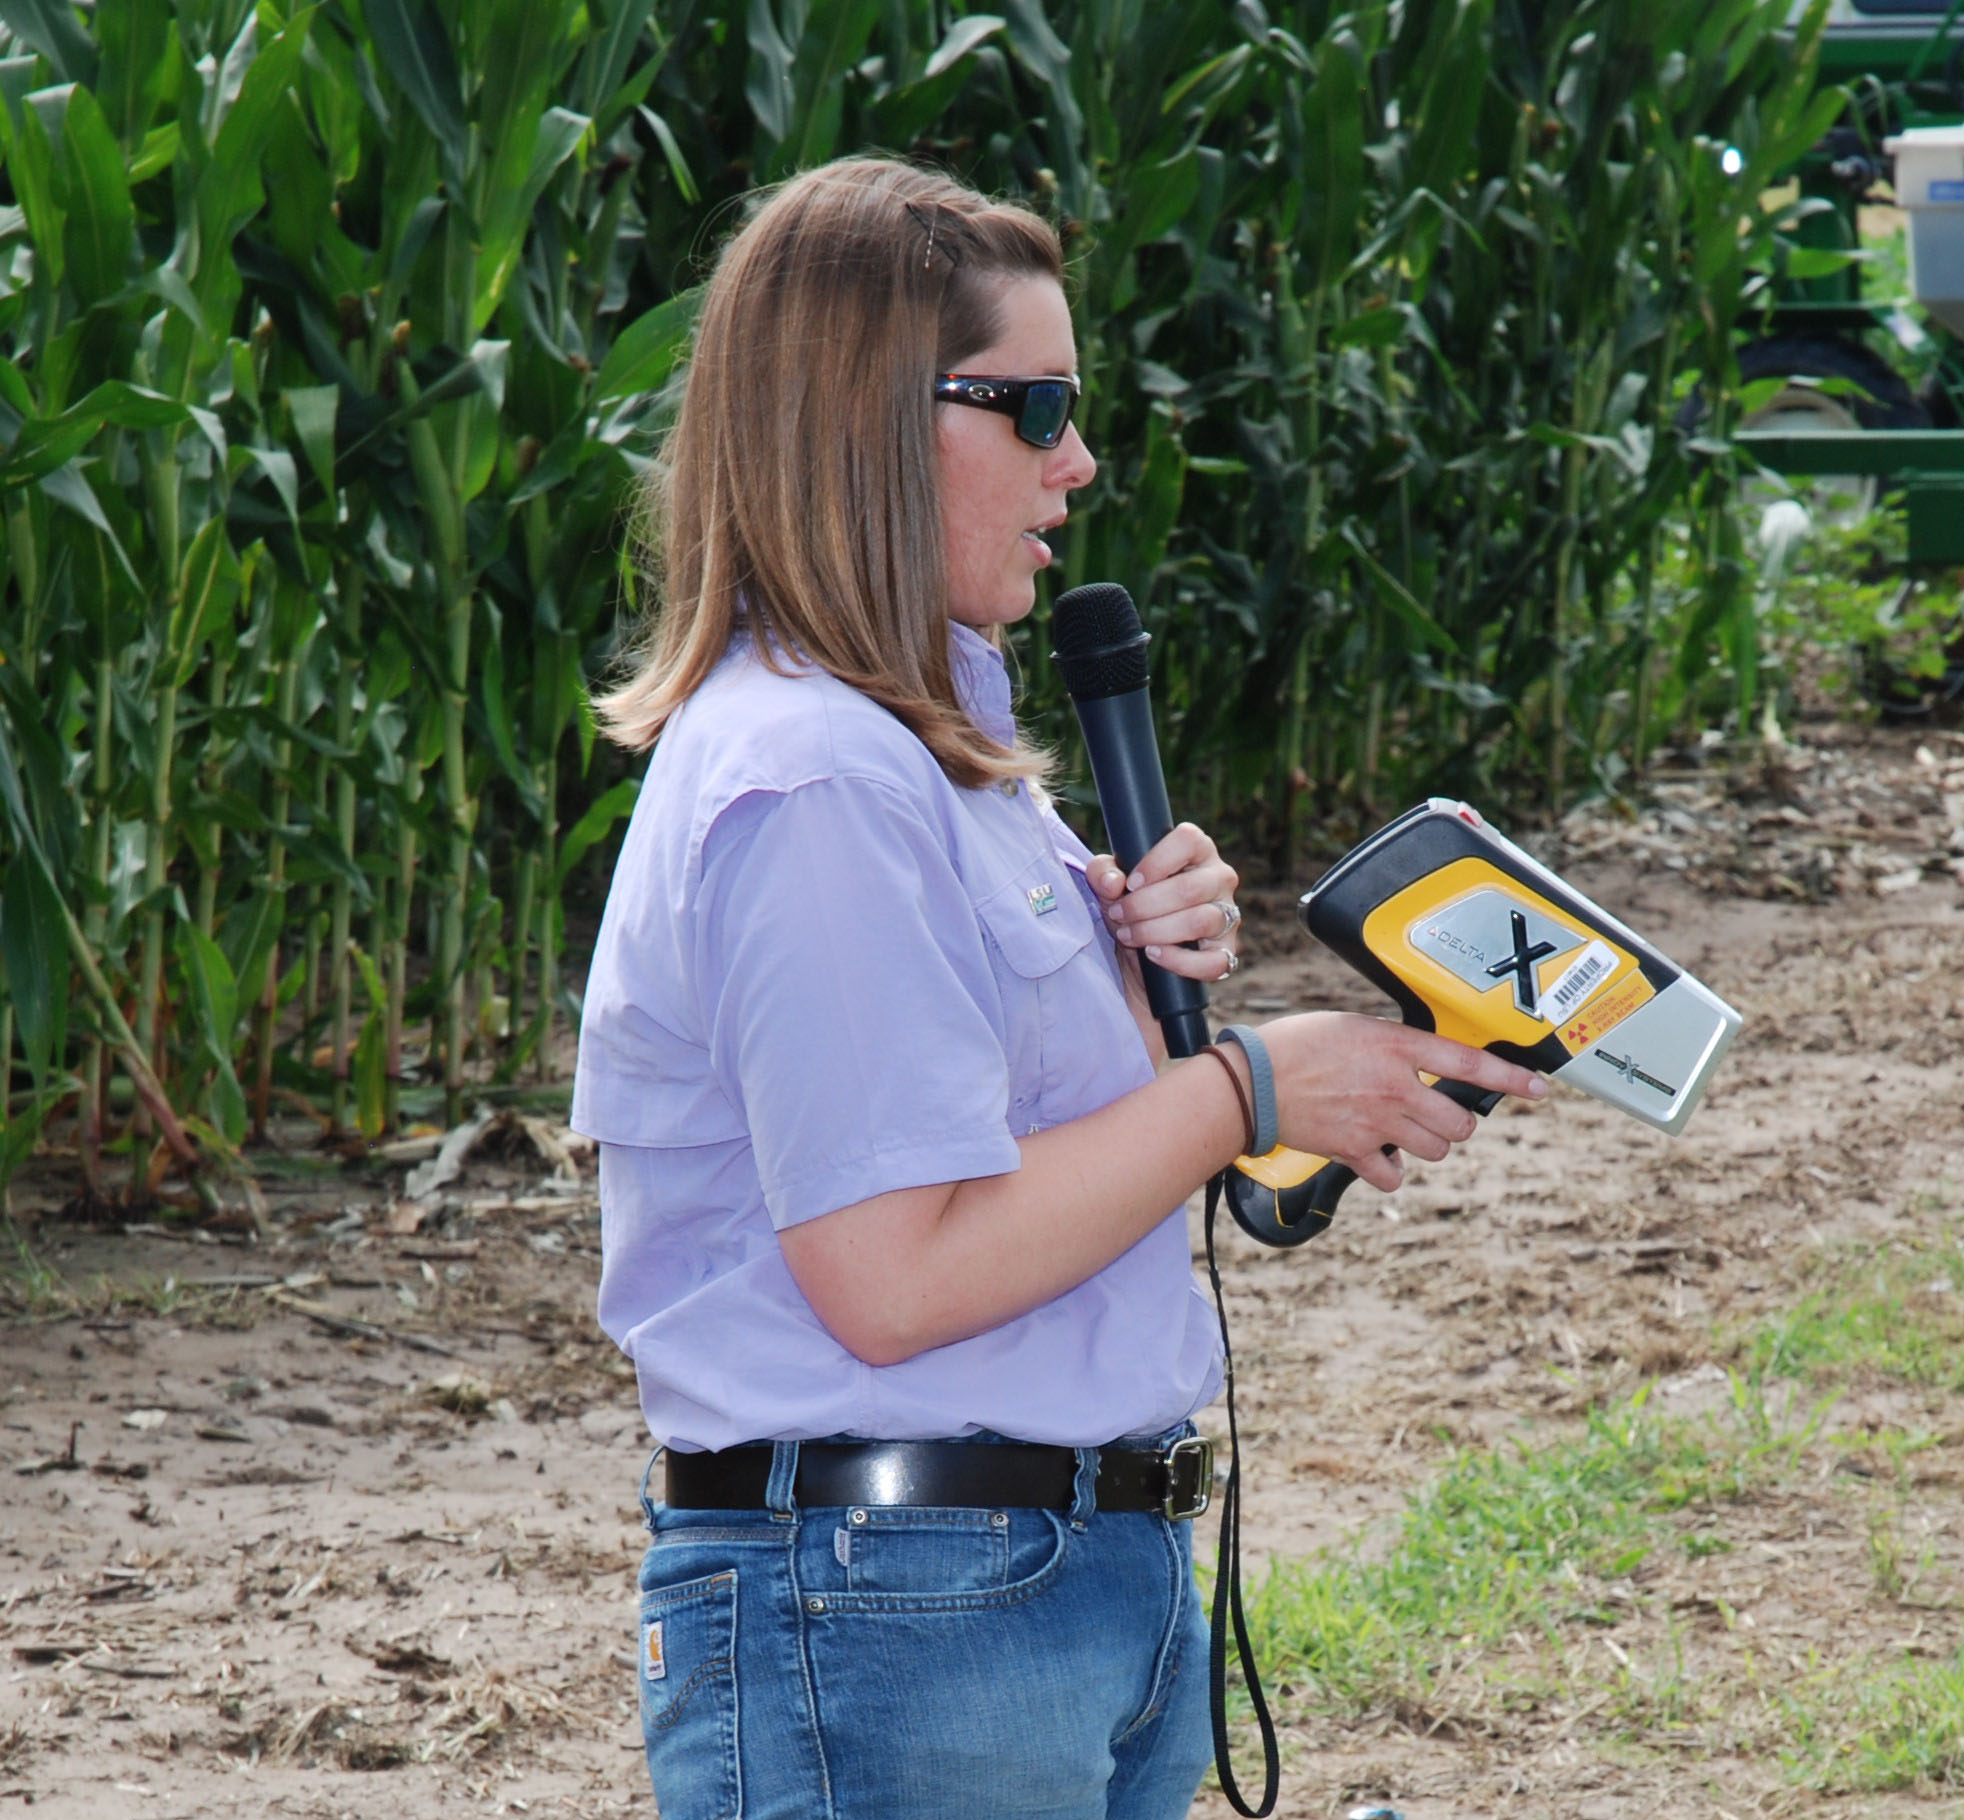 Portable technology used to evaluate soil fertility